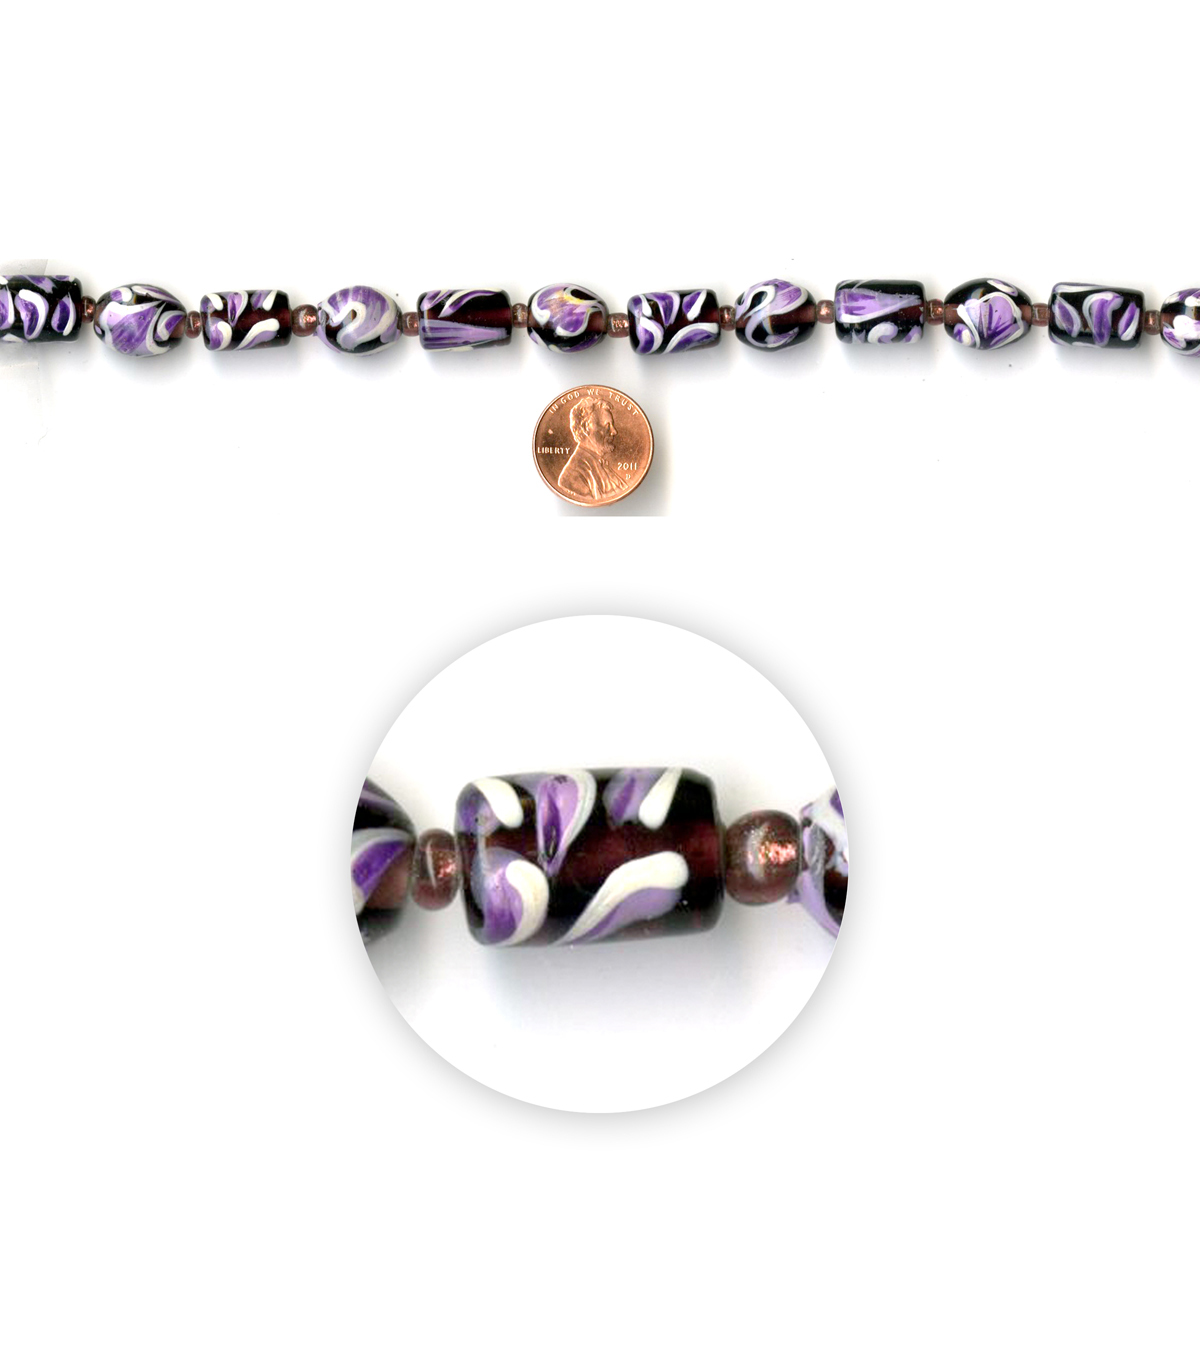 Blue Moon Strung Handpainted Glass Beads,Cylinder & Round,Purple w/White